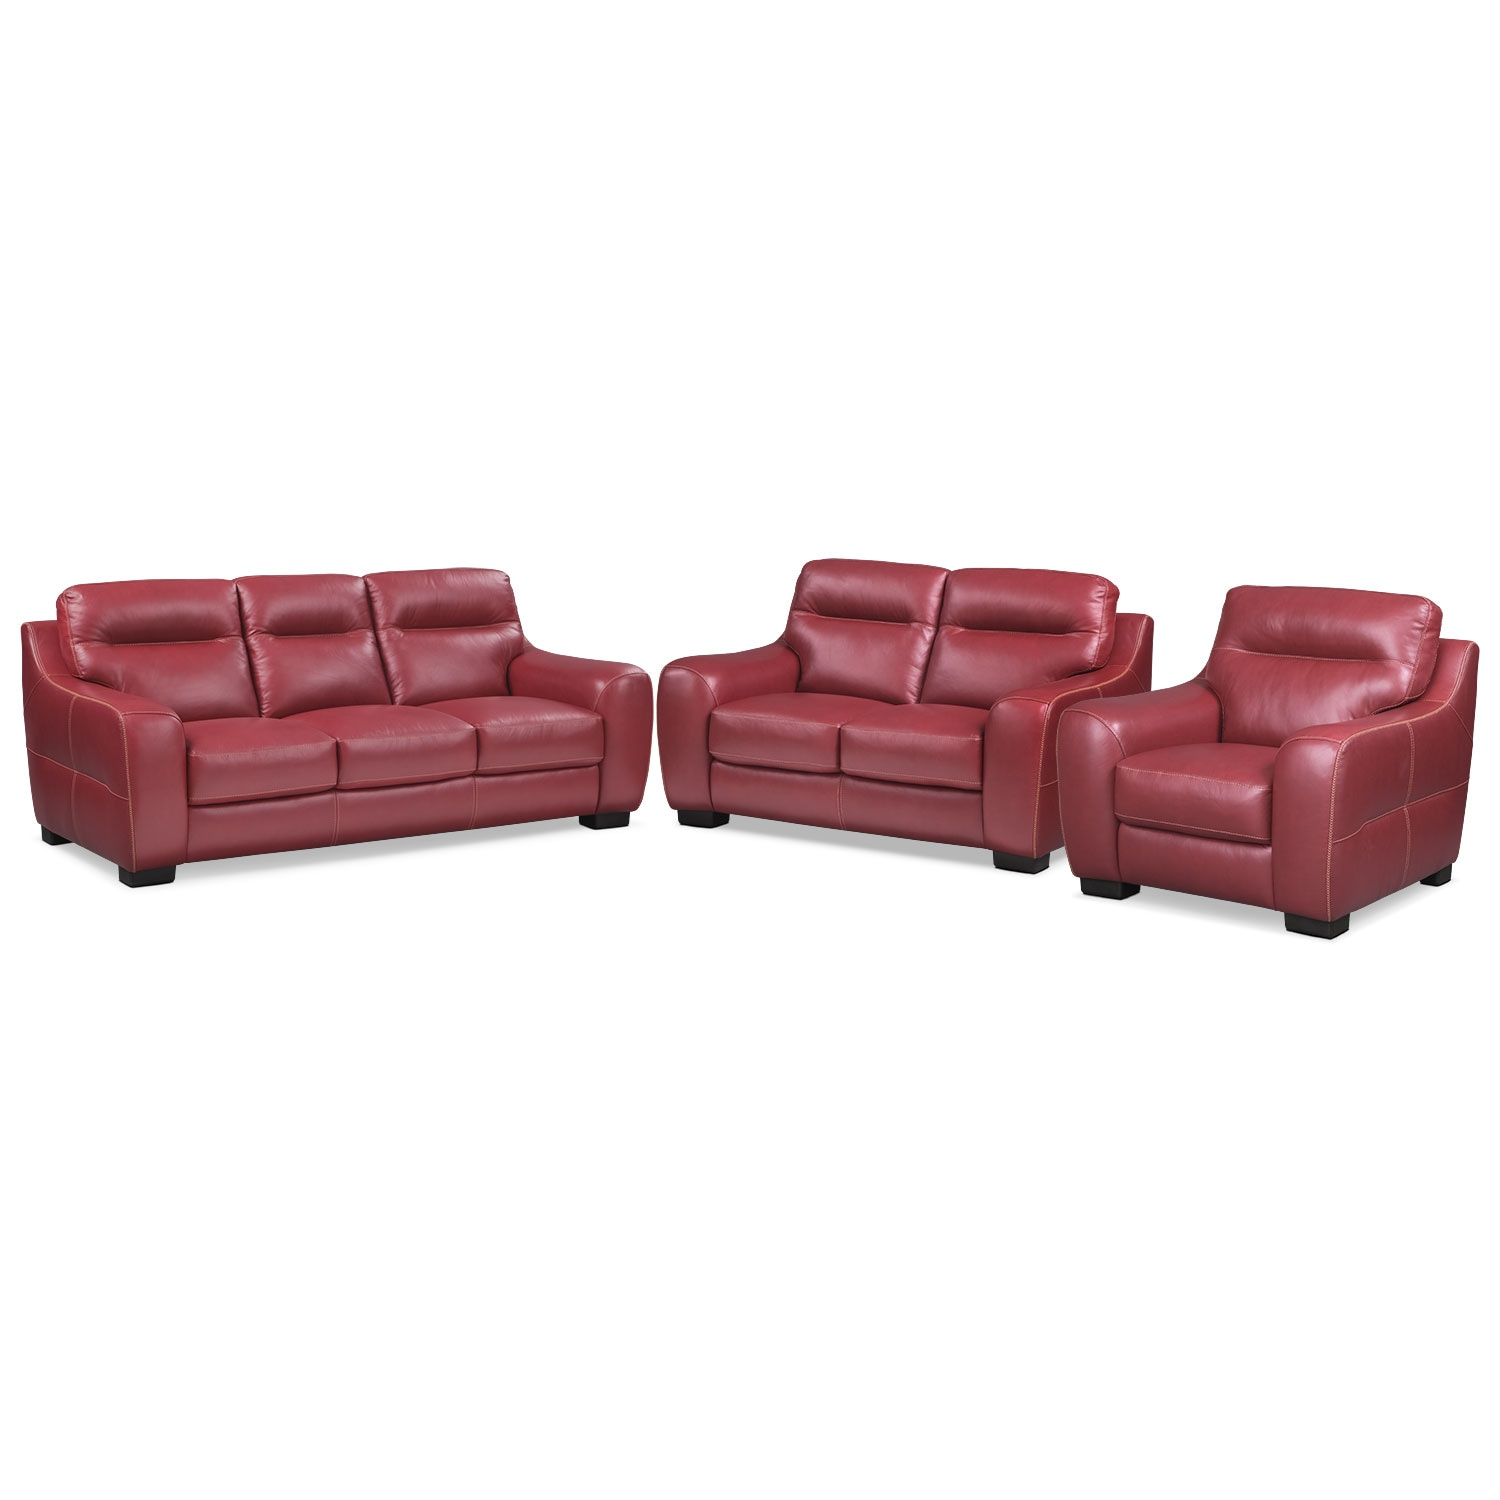 Living Room Furniture - Rocco Red 3 Pc. Living Room